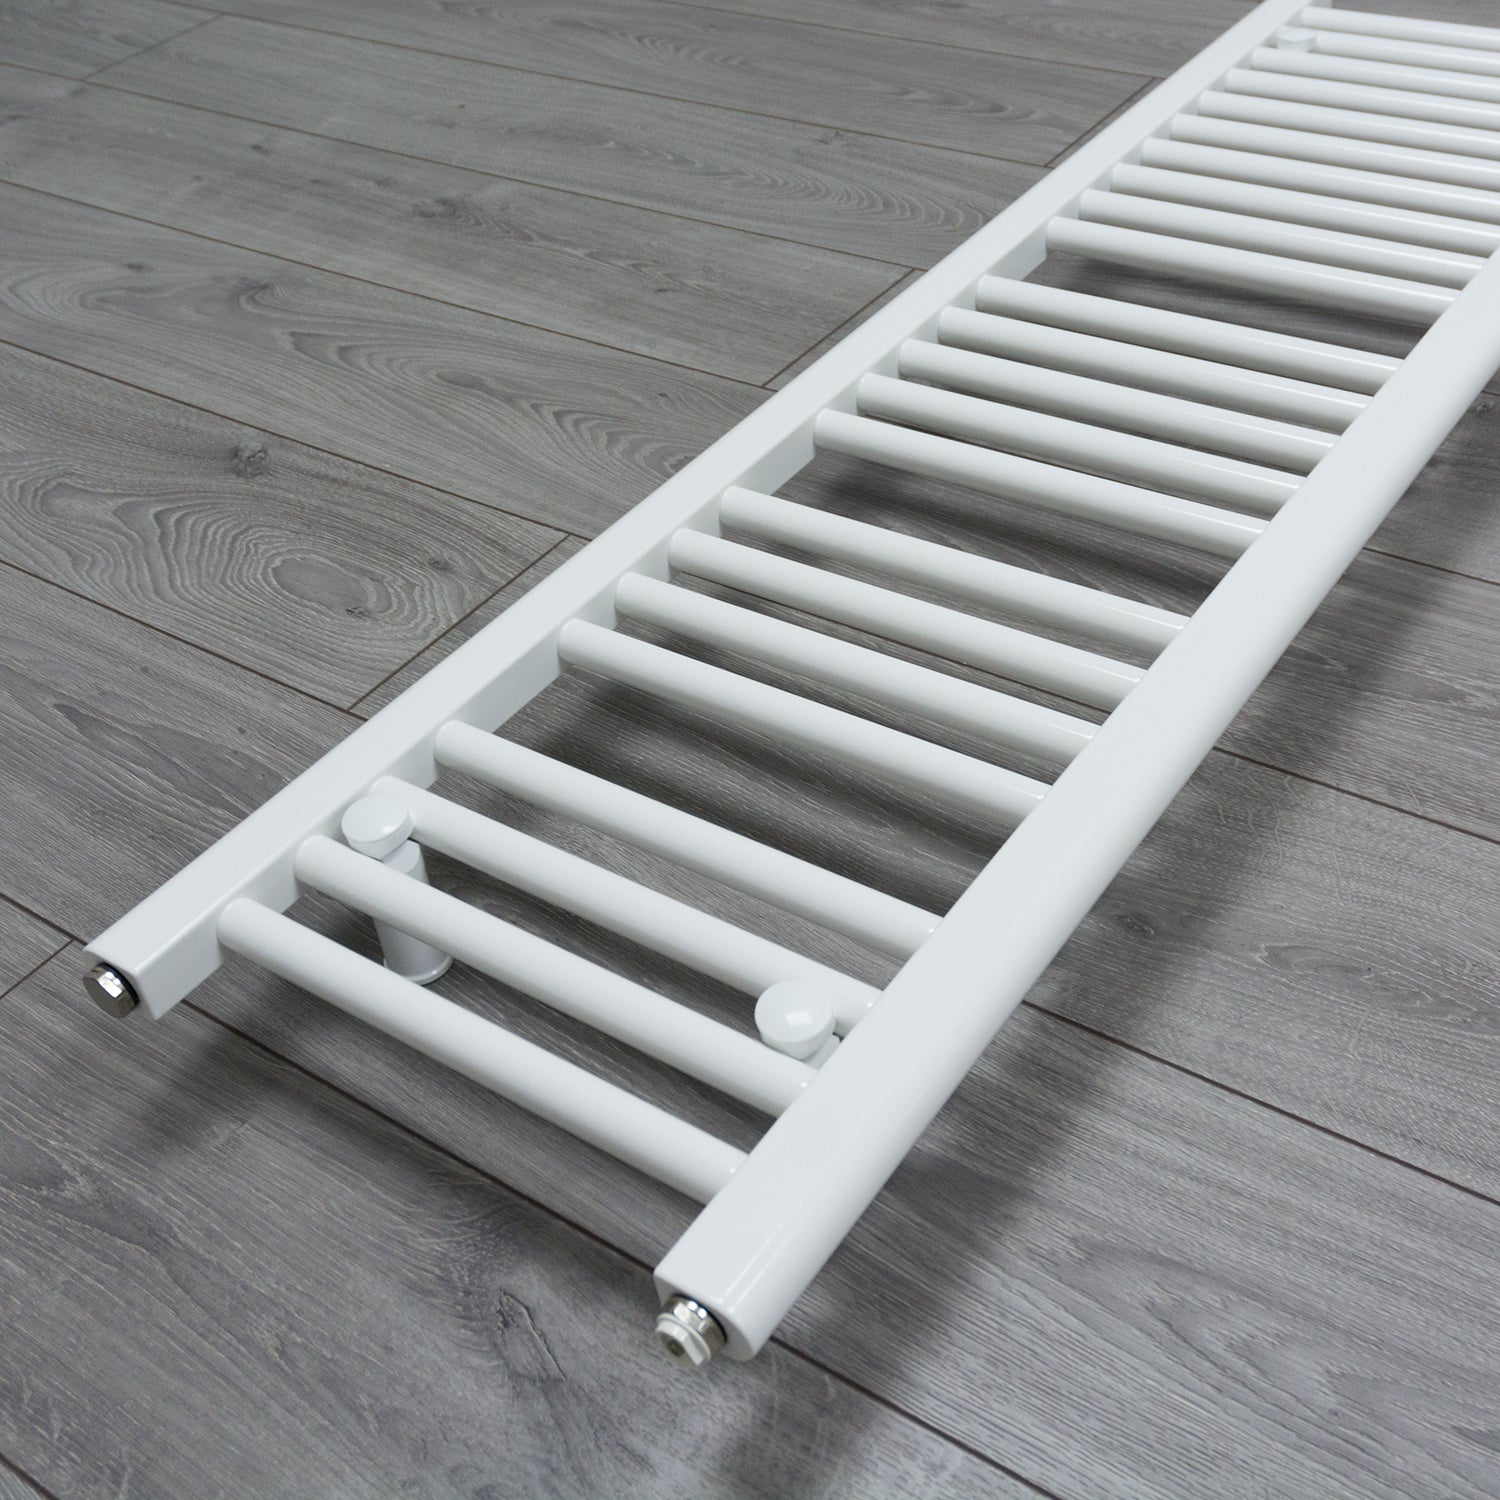 300mm x 600mm White Heated Towel Rail Radiator Close Up Image